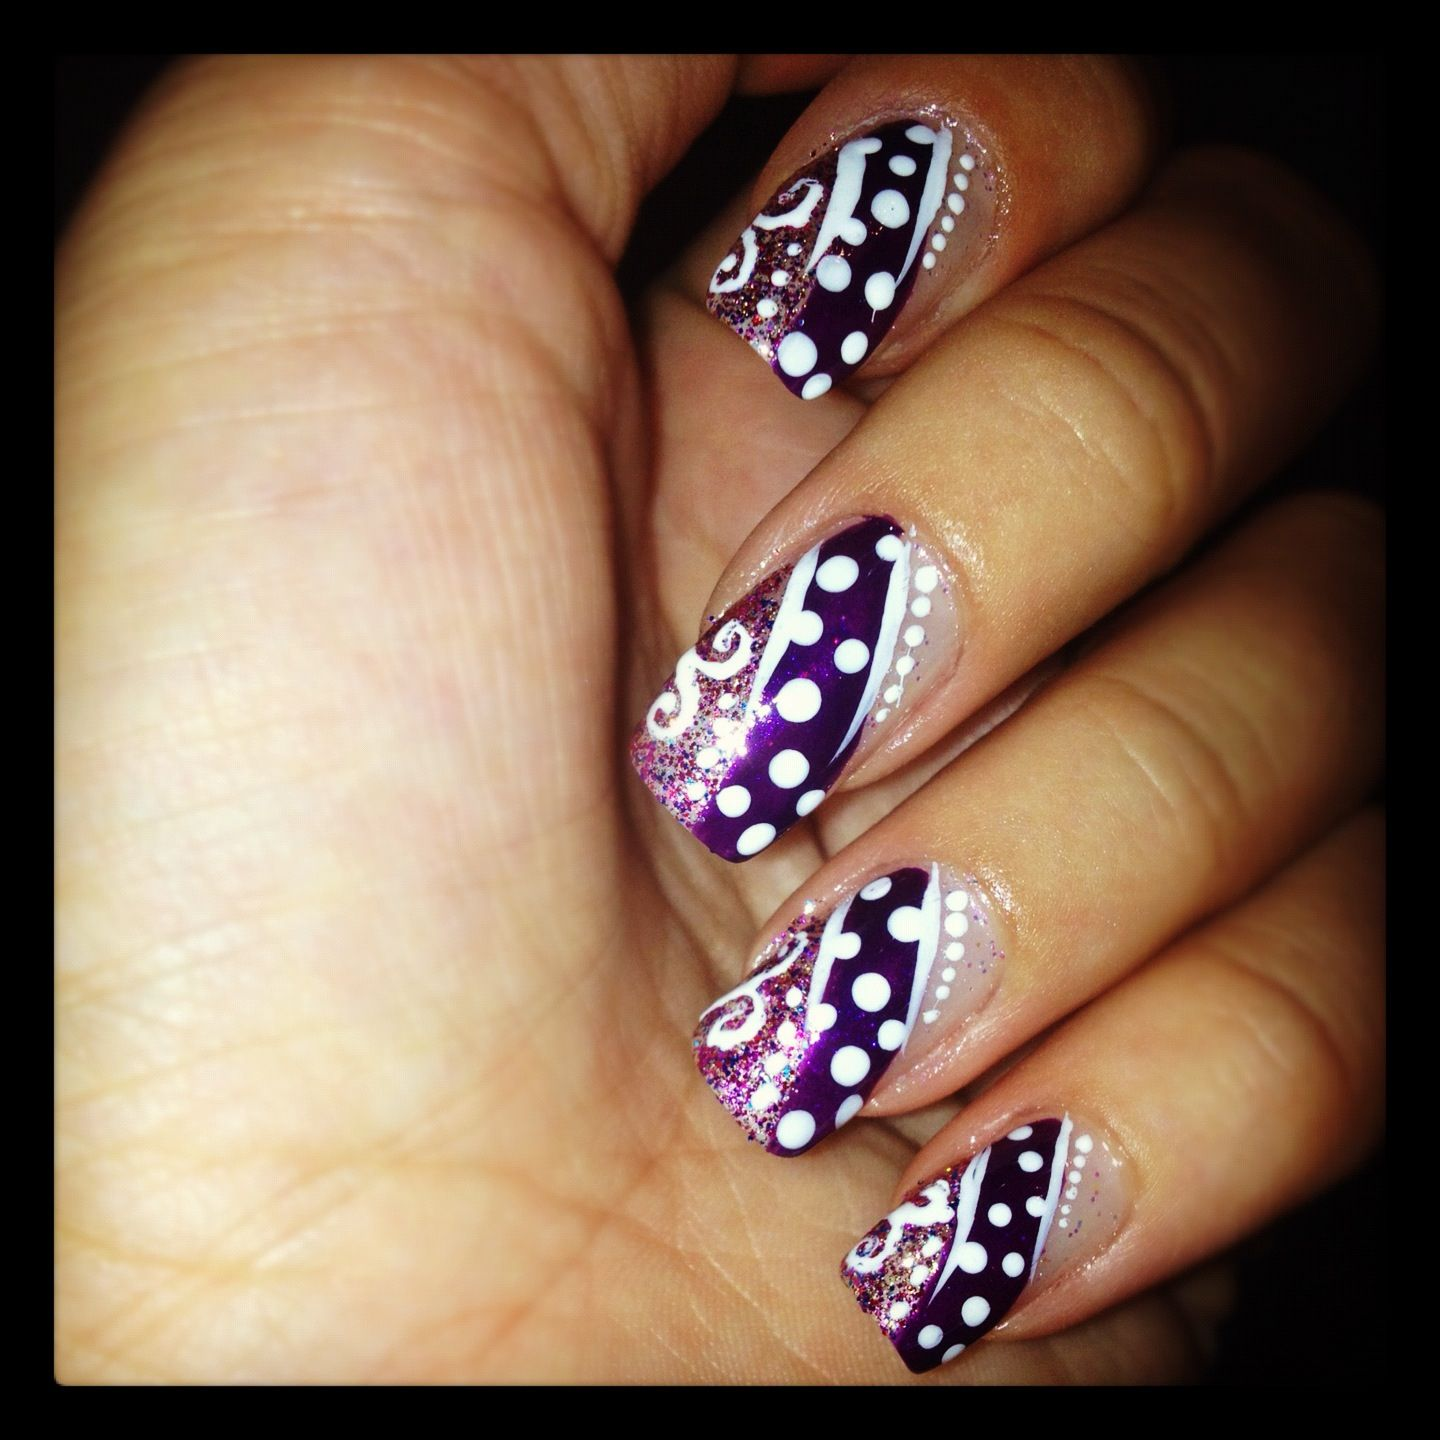 Inspired by the amazing love4nails | Nail art( created by me ...